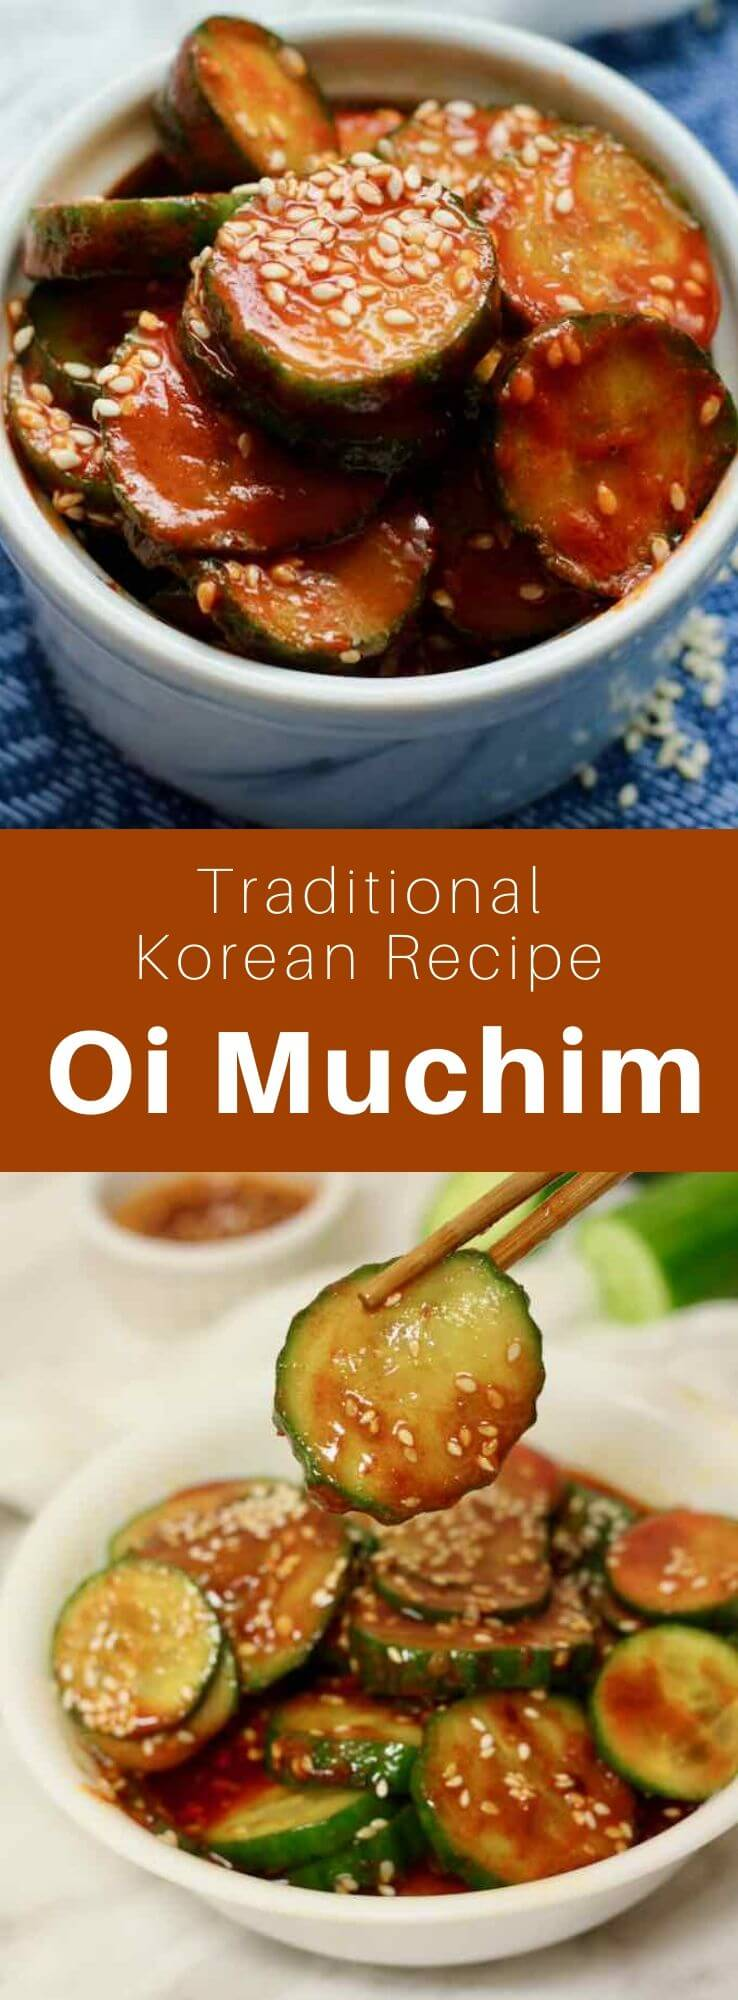 Oi muchim (or oi saengche) is a delicious traditional Korean salad made with cucumber flakes and red pepper. # Korean food # Korean recipe # Korean cuisine #World cuisine # 196 flavors